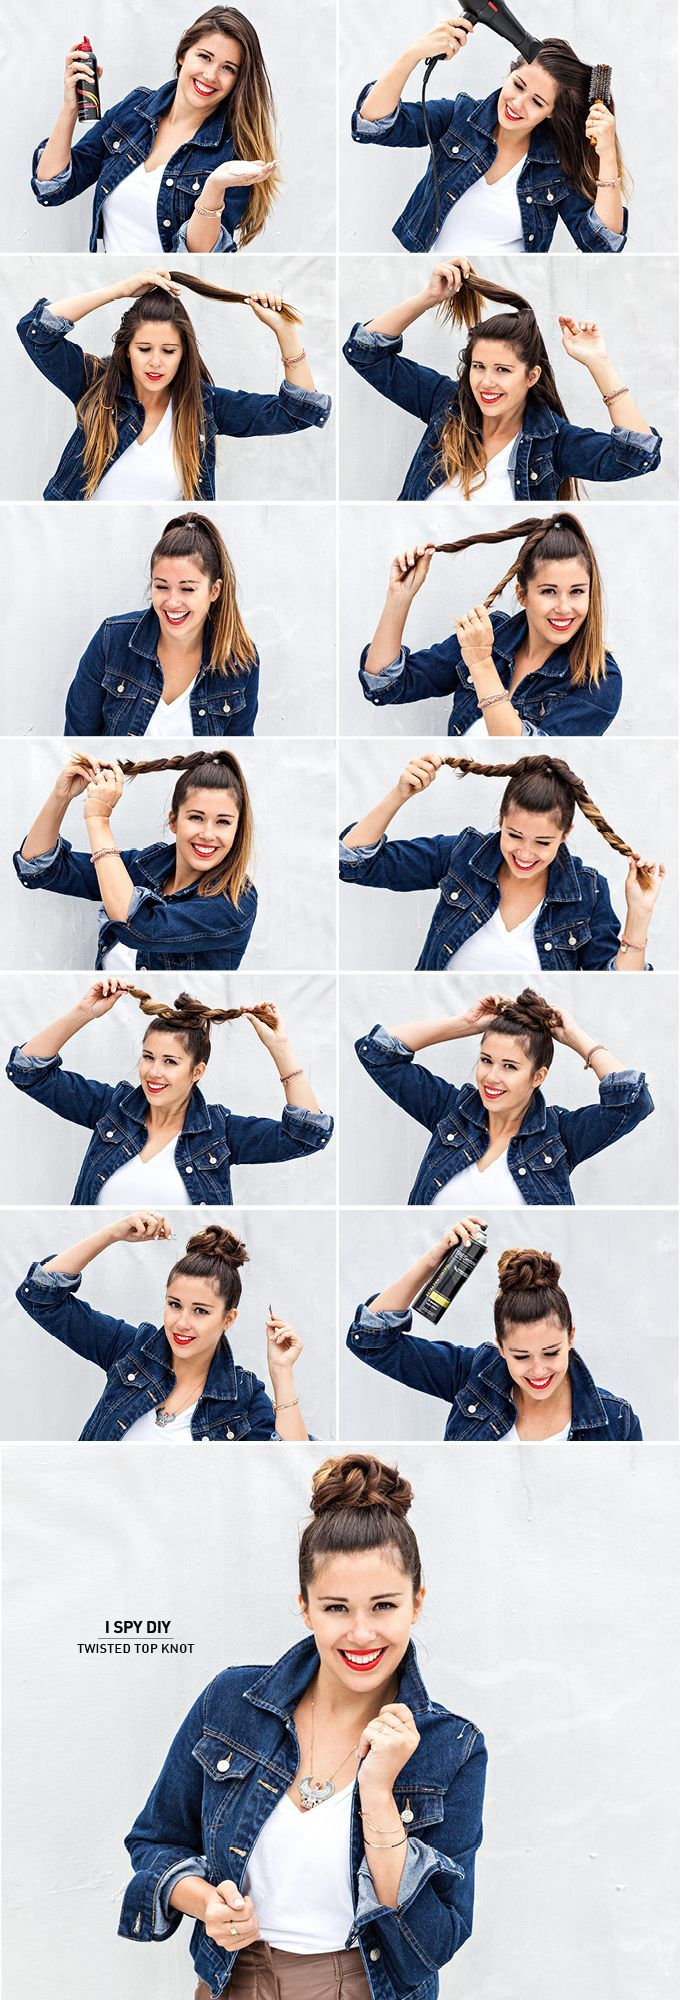 Other Step-by-step tutorials http://pinmakeuptips.com/what-are-the-10-biggest-hair-care-mistakes/